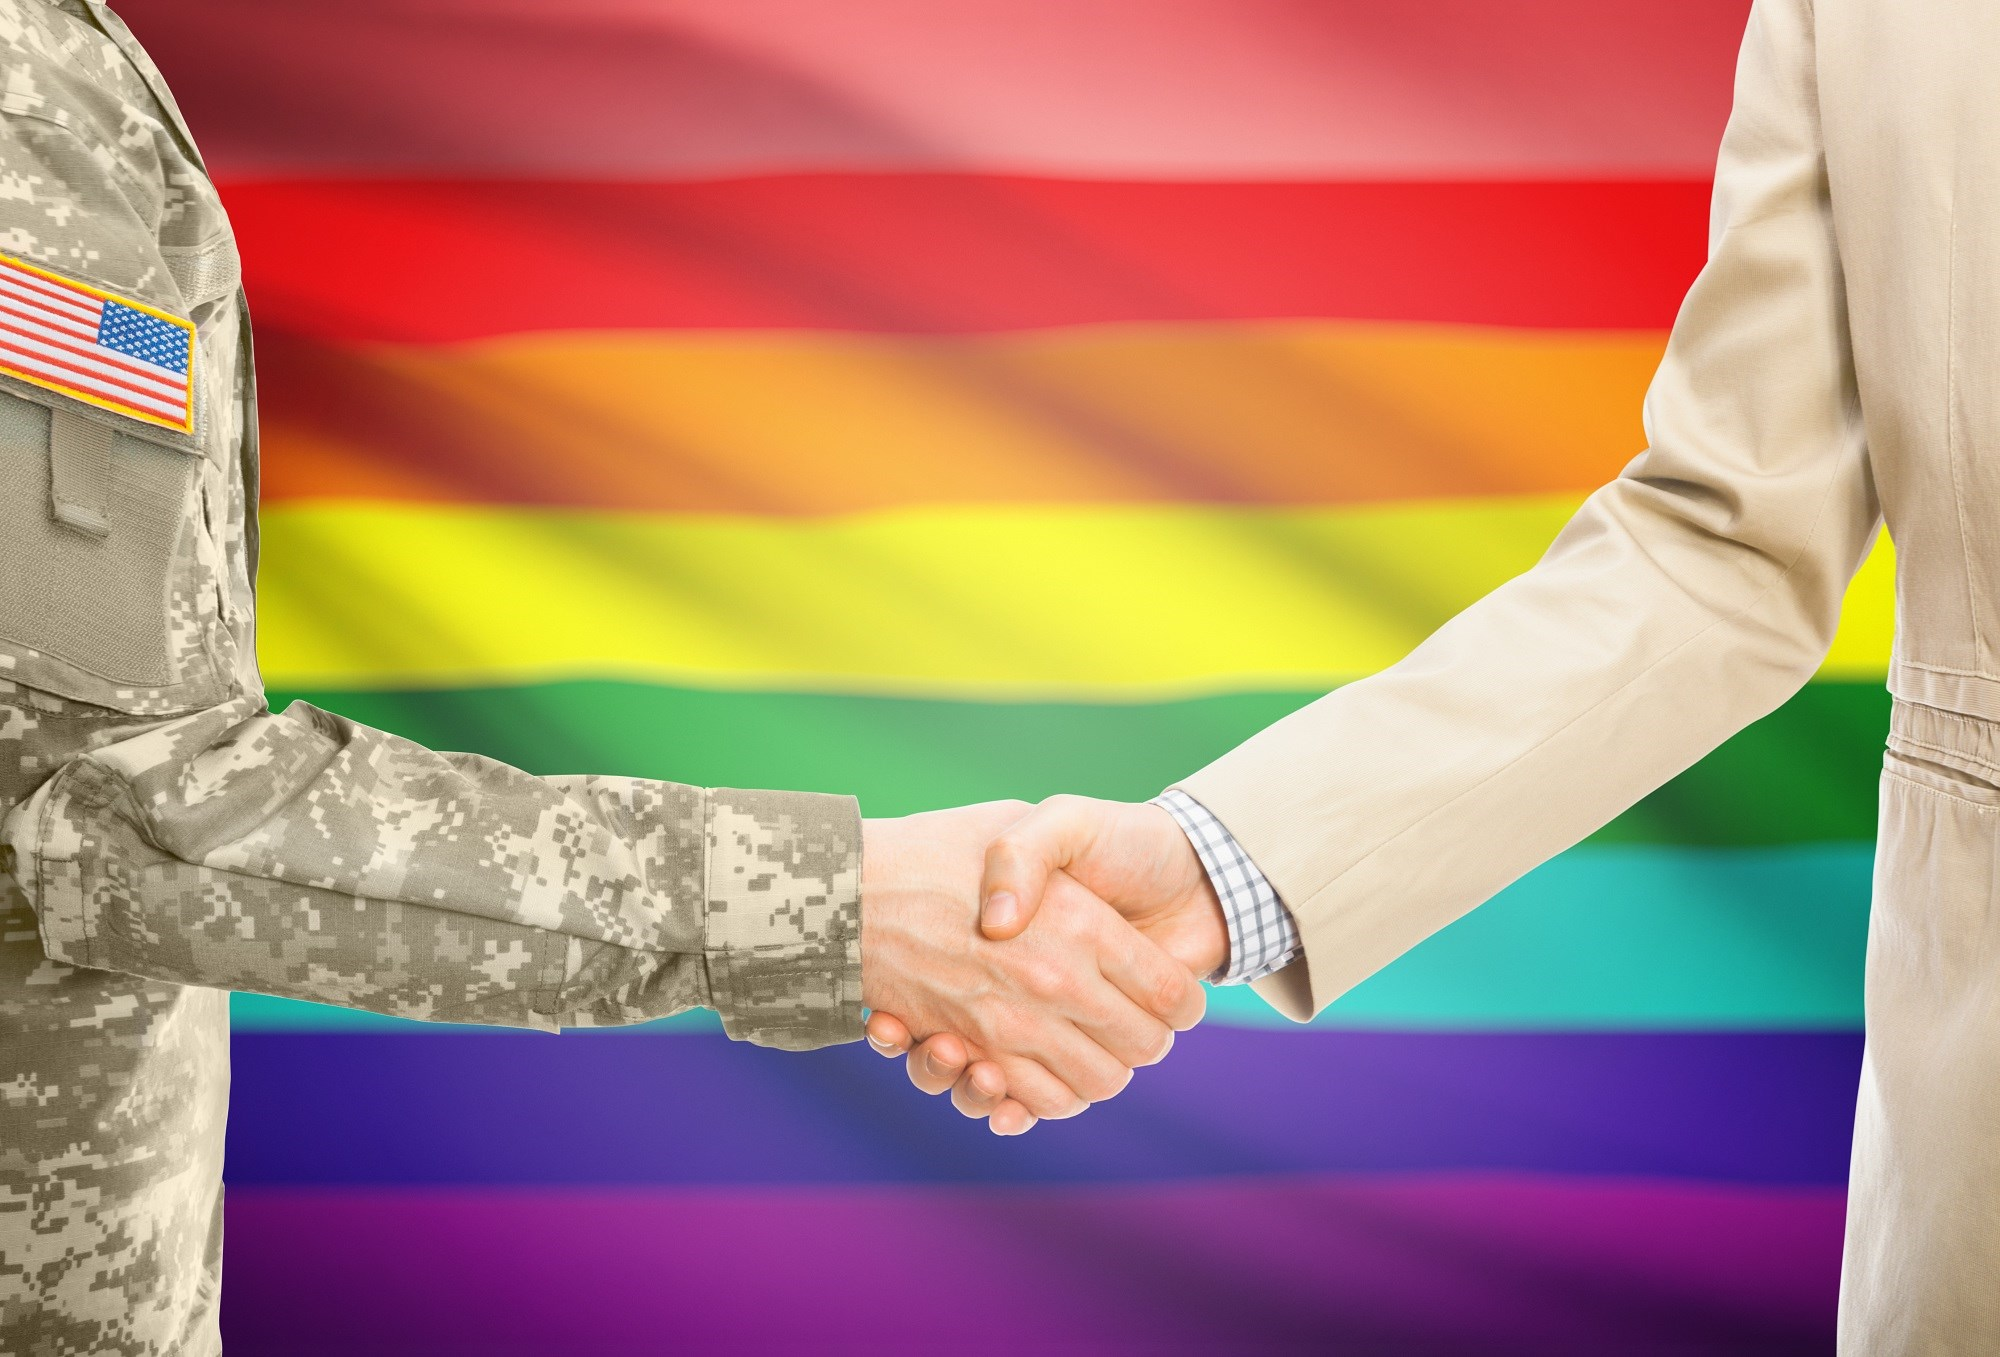 Despite similar levels of access to health care, transgender veterans had higher odds of having at least 1 disability than cisgender veterans.